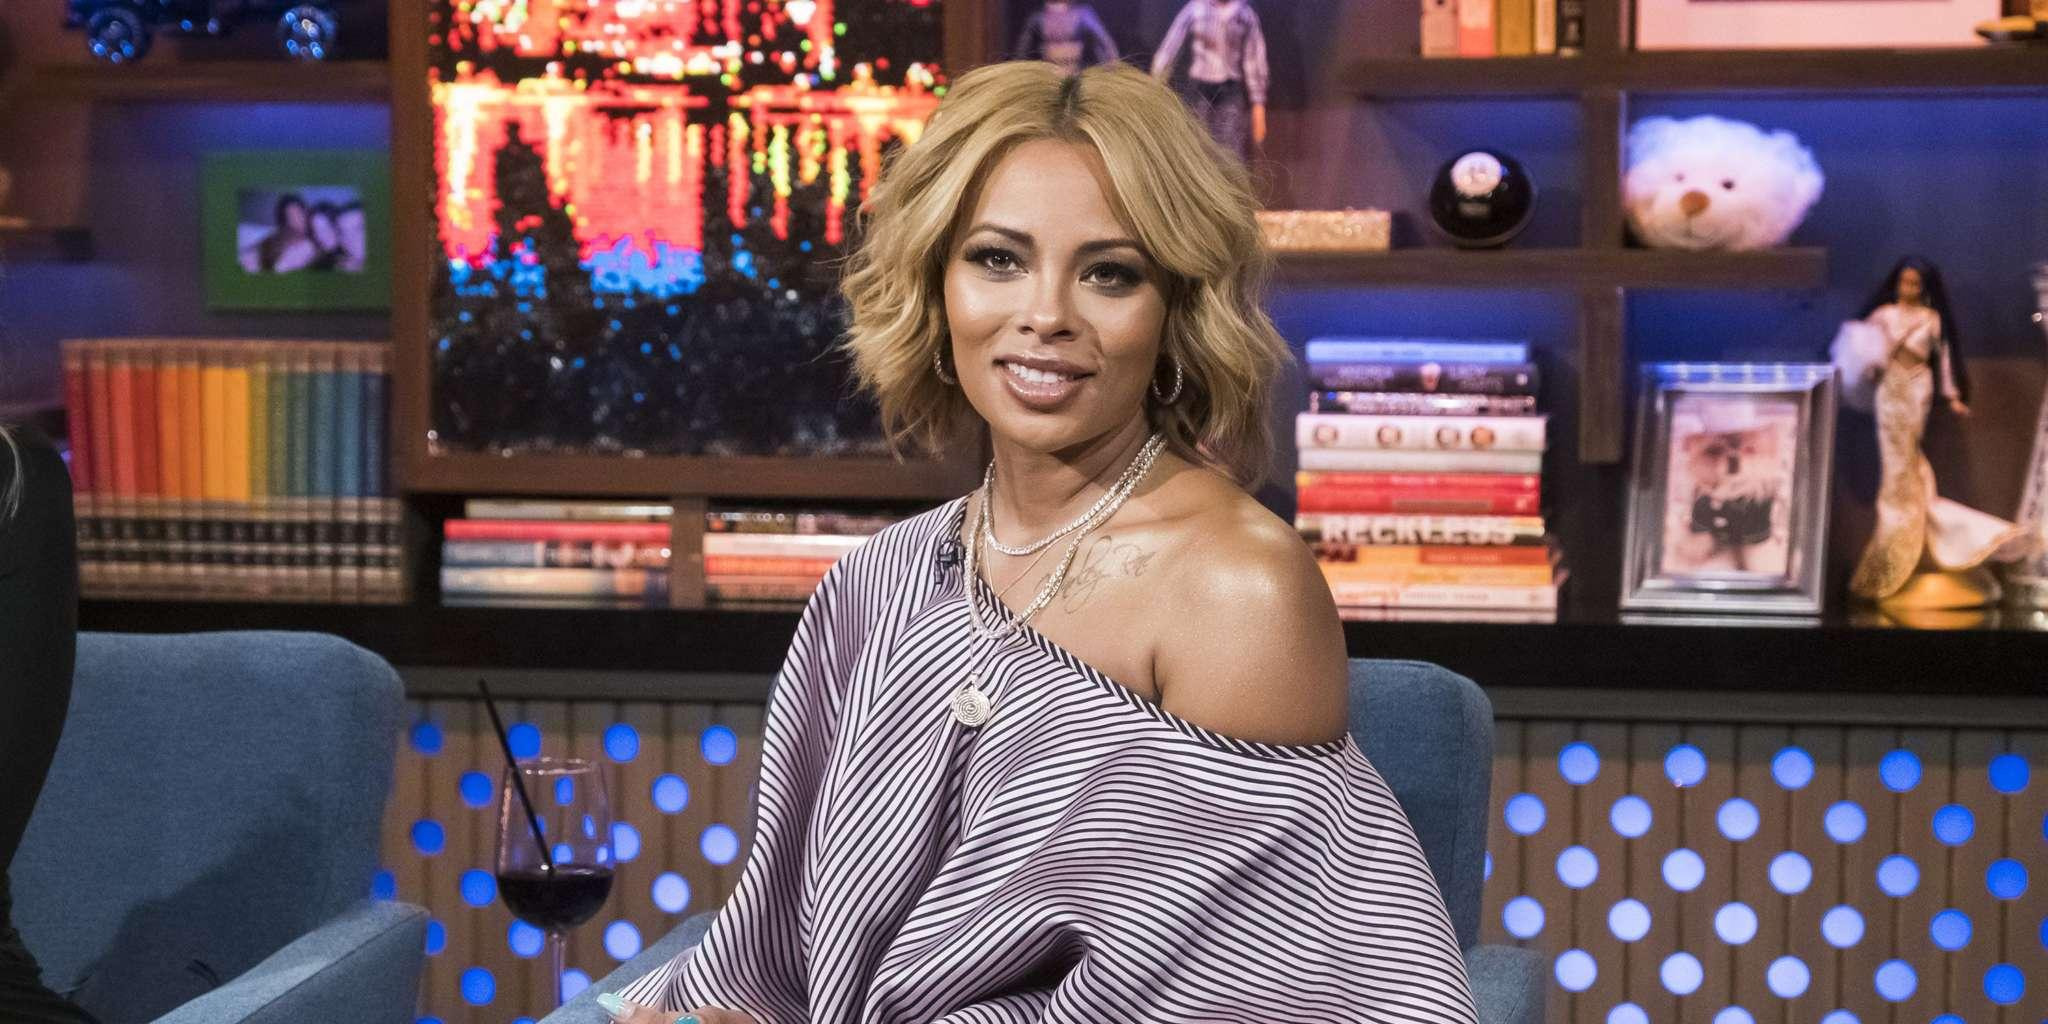 Eva Marcille's Fans Slam Kenya Moore, Accusing Her Of Playing The Victim